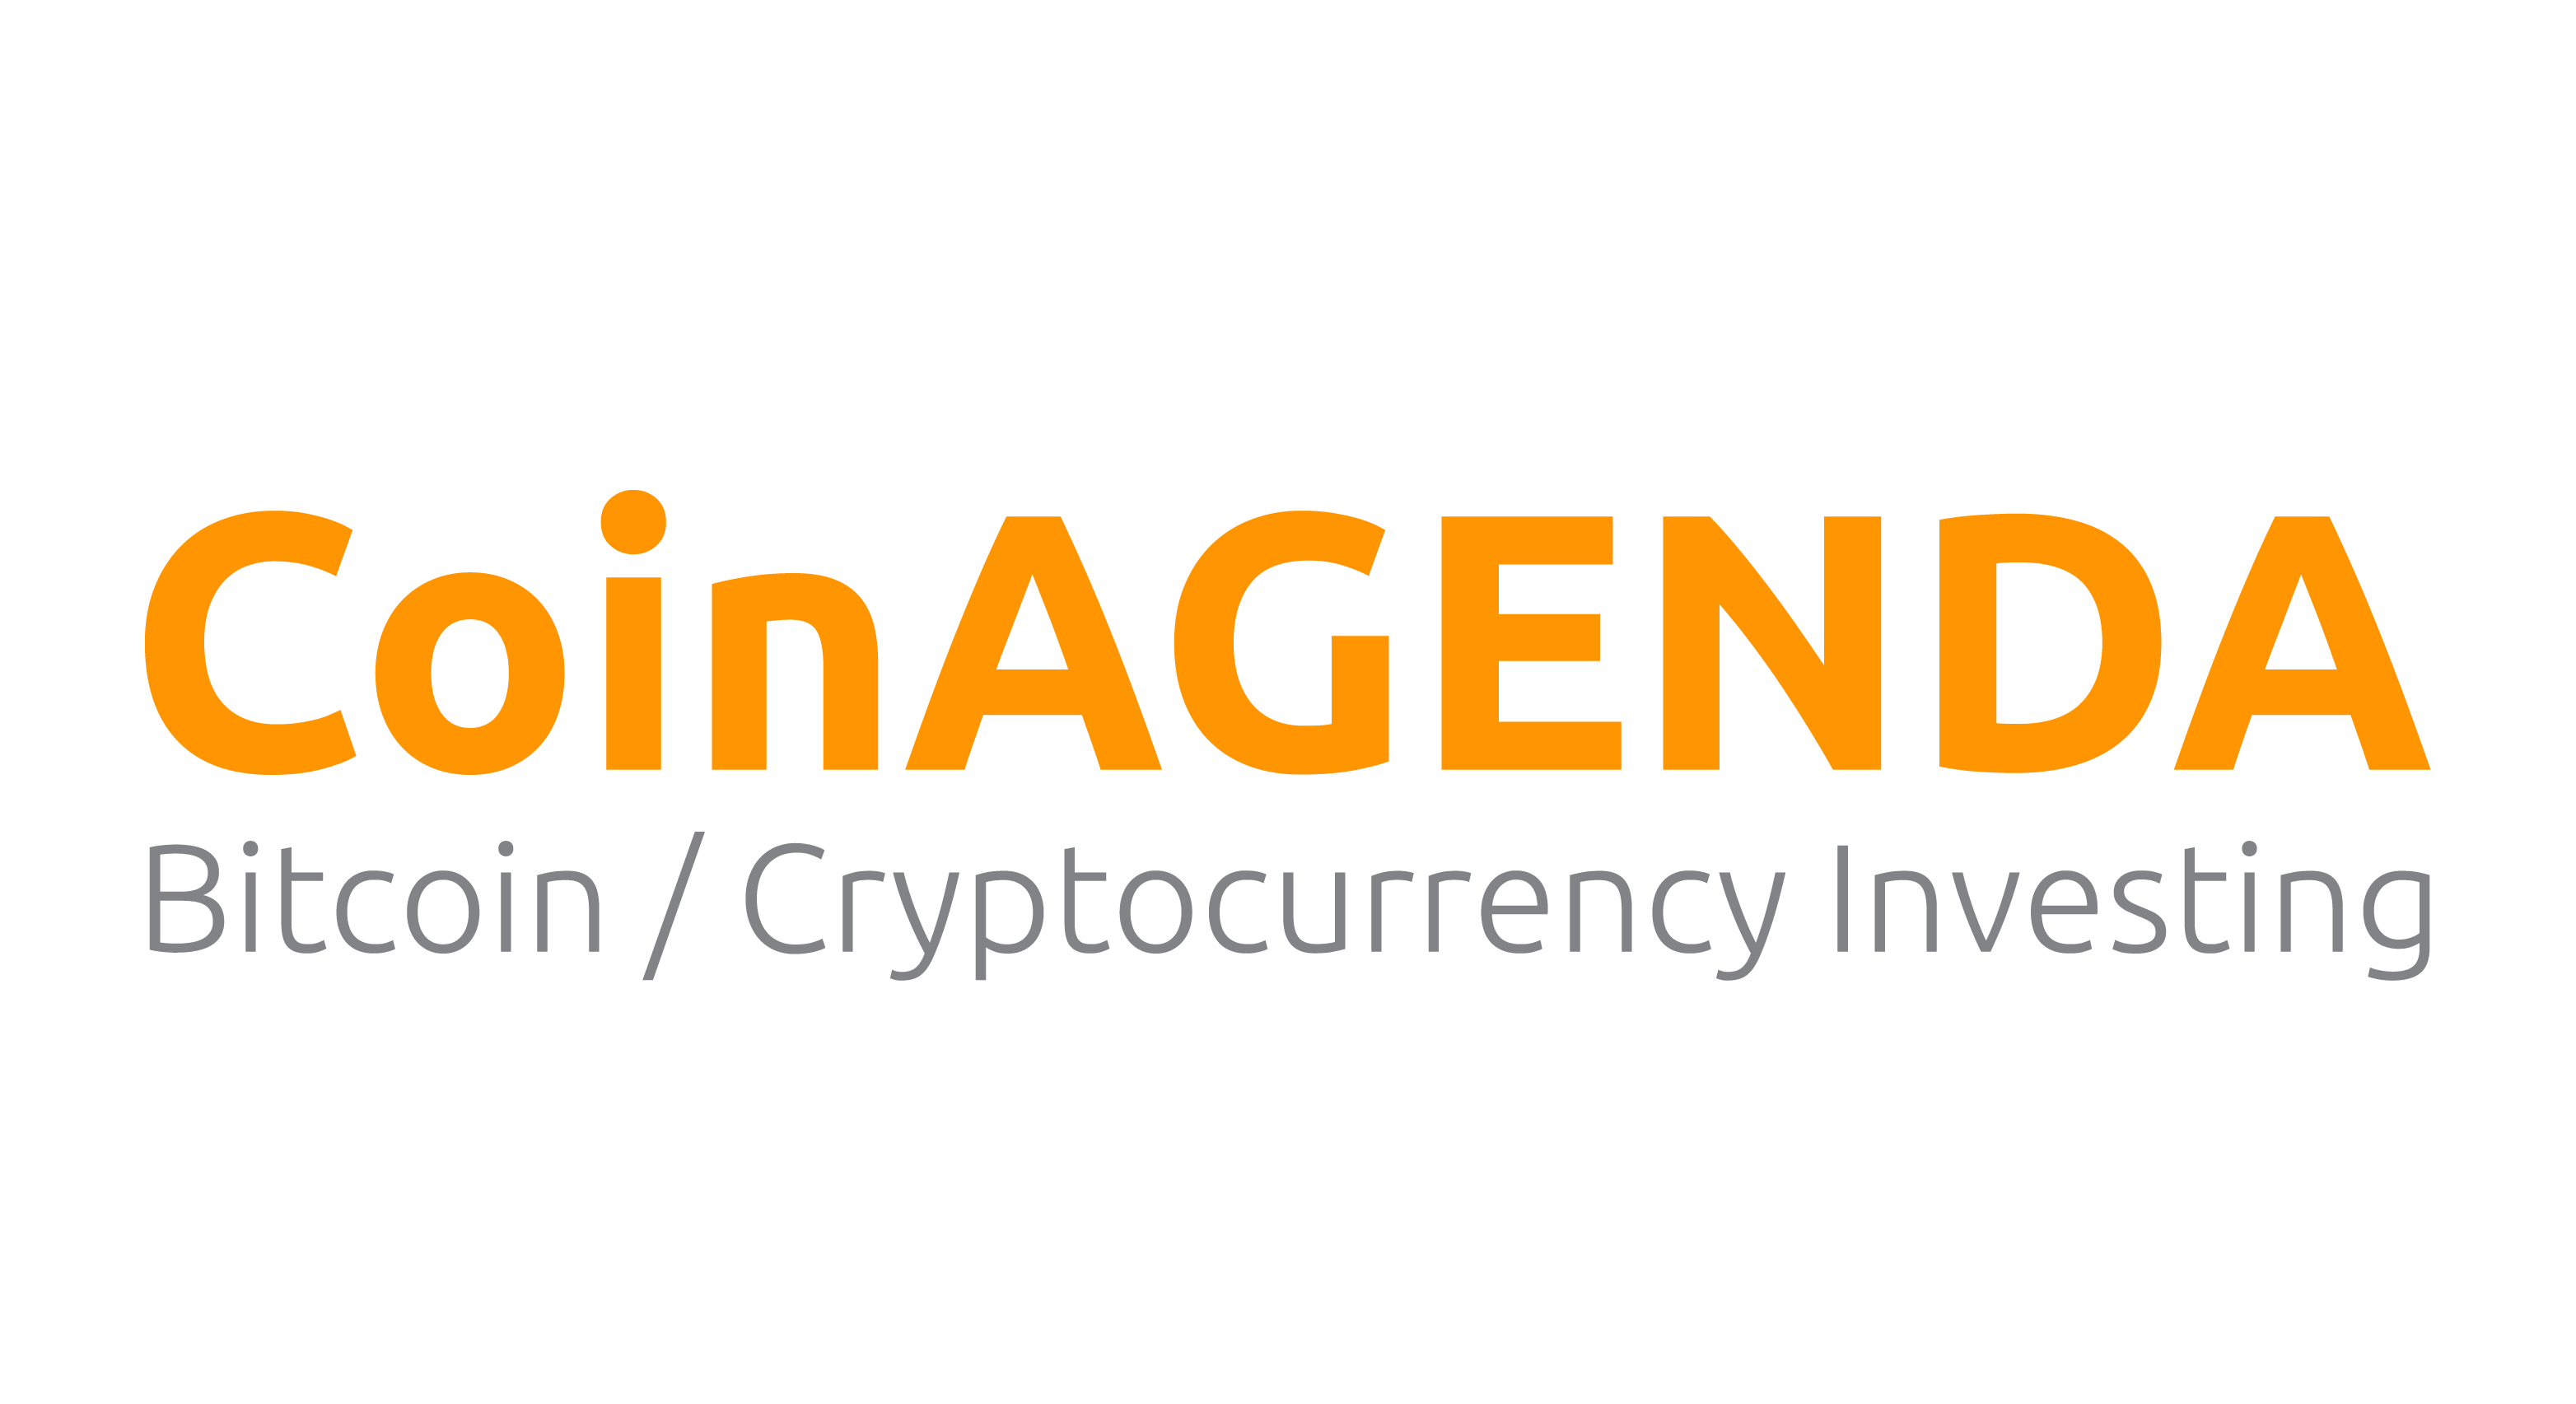 CoinAgenda Middle East & Africa Bring Top Thought Leaders in Blockchain to Dubai Oct 8-10